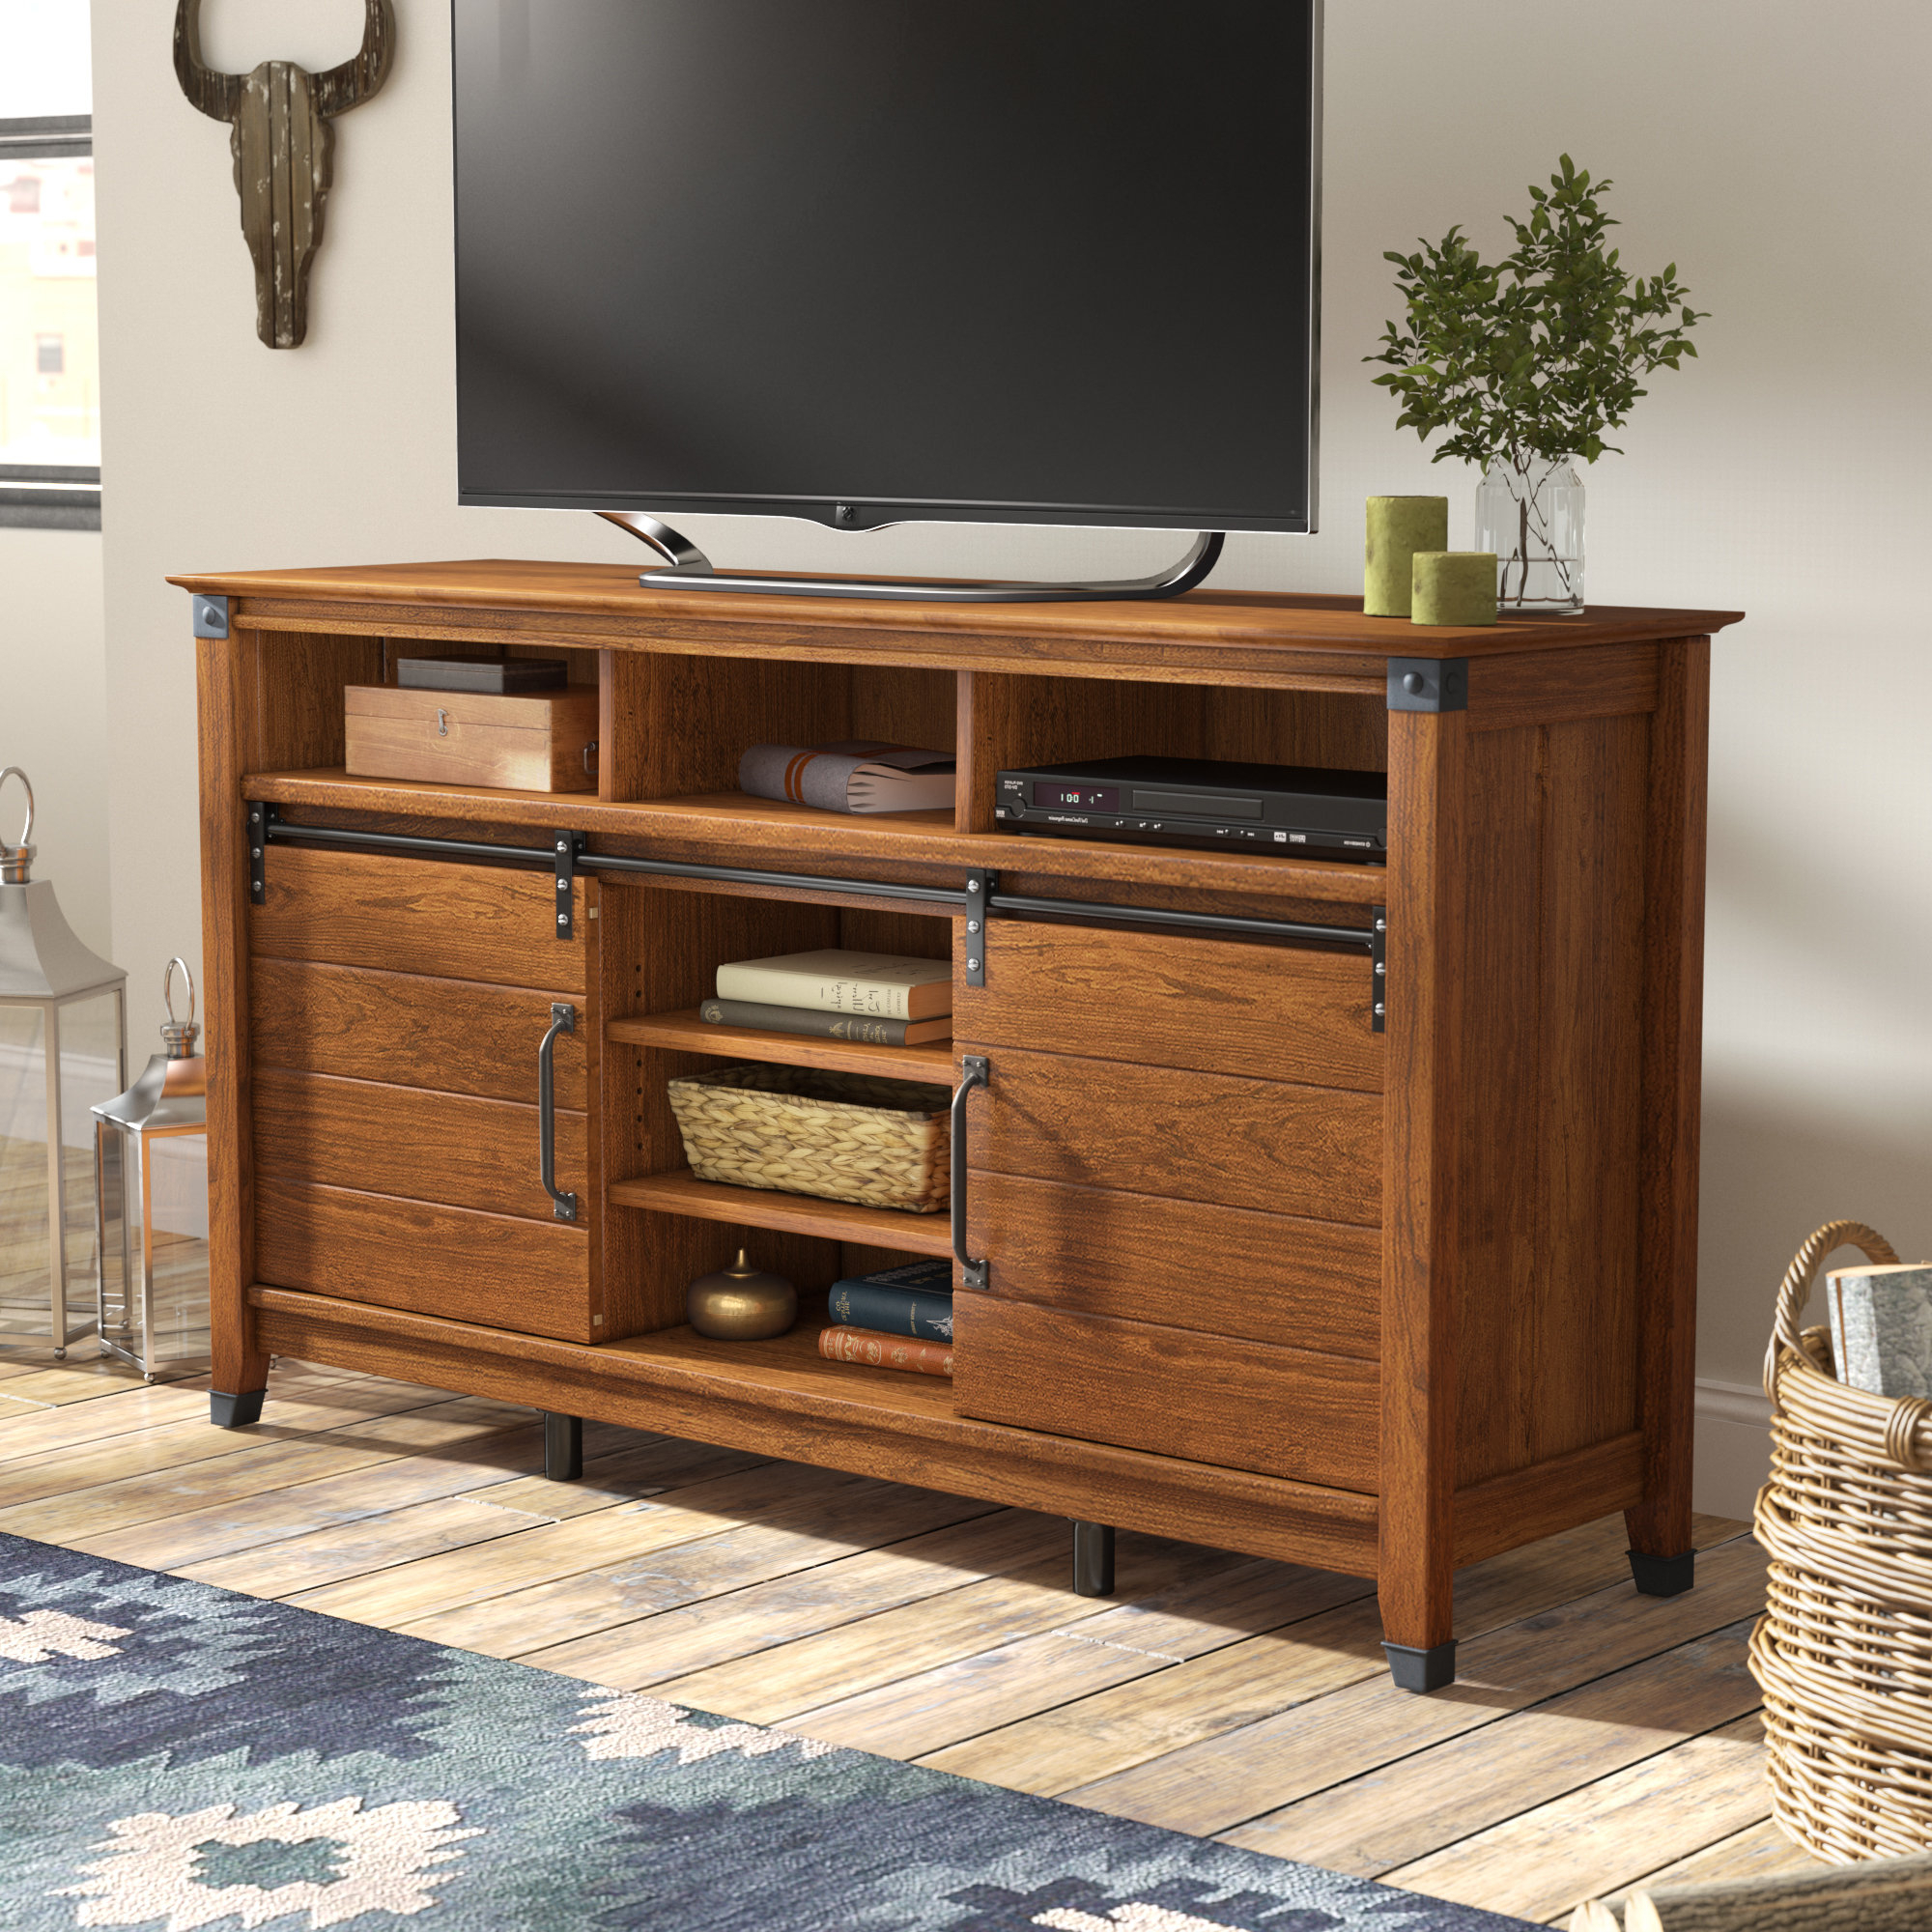 Tall (33 Inches And Larger) Tv Stands | Birch Lane With Regard To Edwin Grey 64 Inch Tv Stands (View 11 of 20)